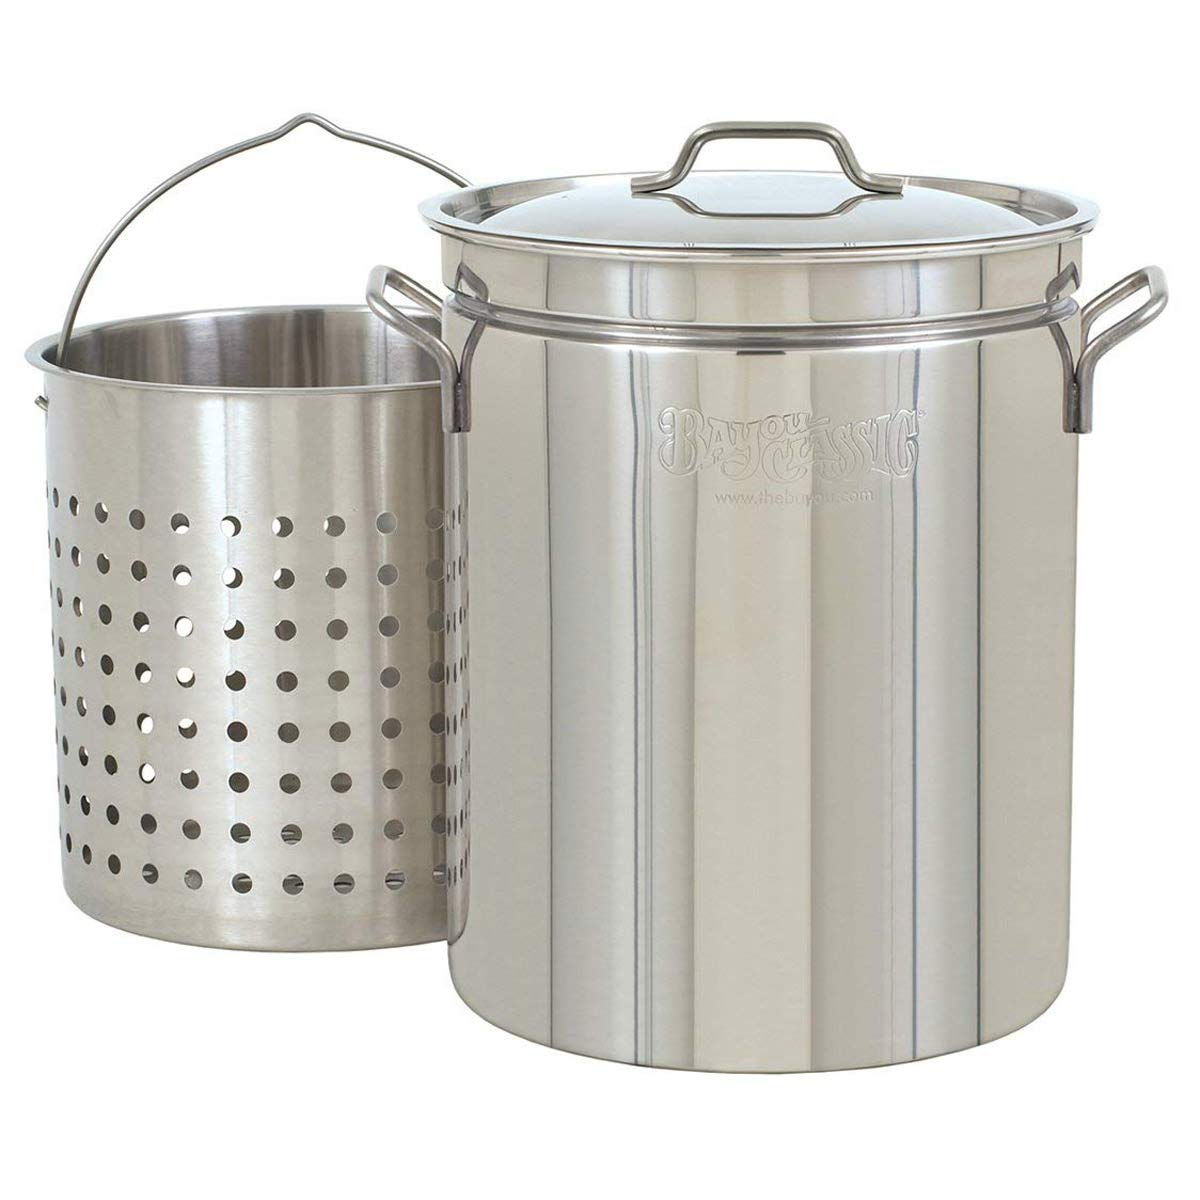 Bayou Classic 1136, 36-Qt. Stainless Fryer/Steamer with Vented Lid and Basket by Bayou Classic (Image #1)